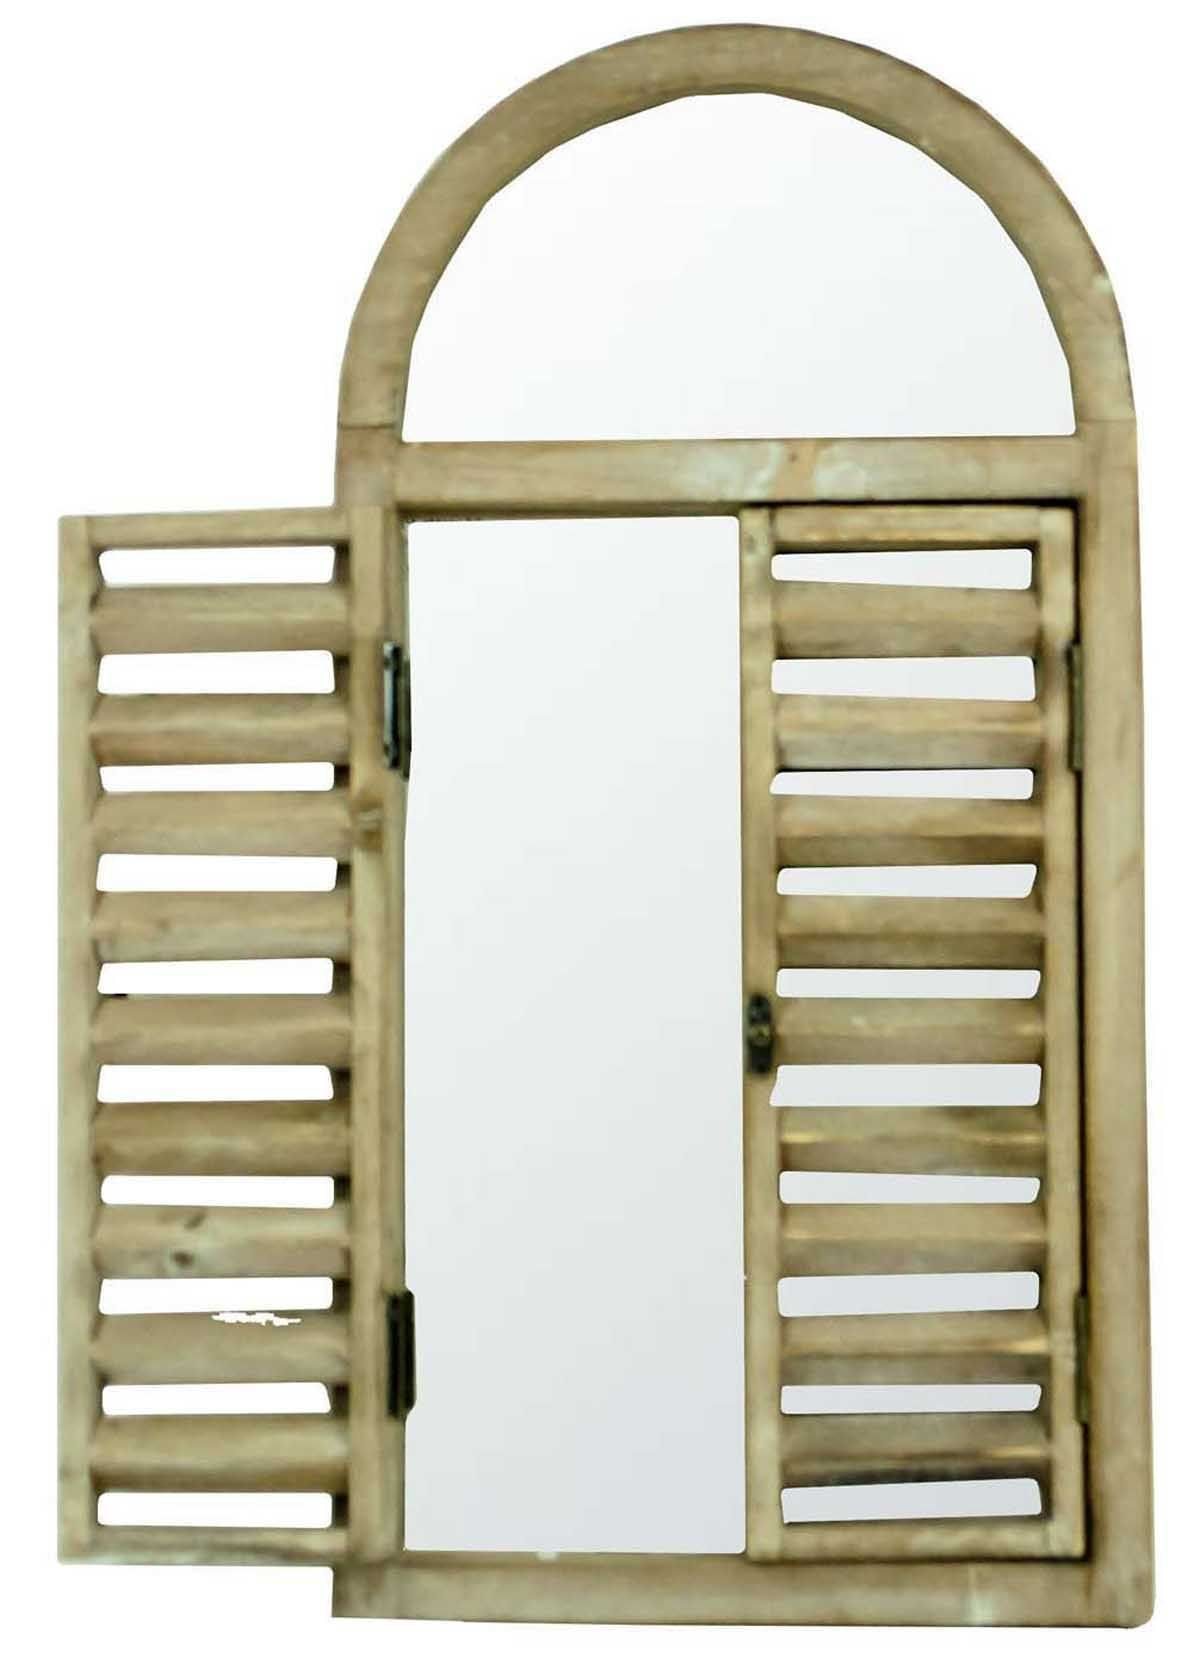 Arched Wooden Garden Shabby Chic Vintage Wall Mirror With